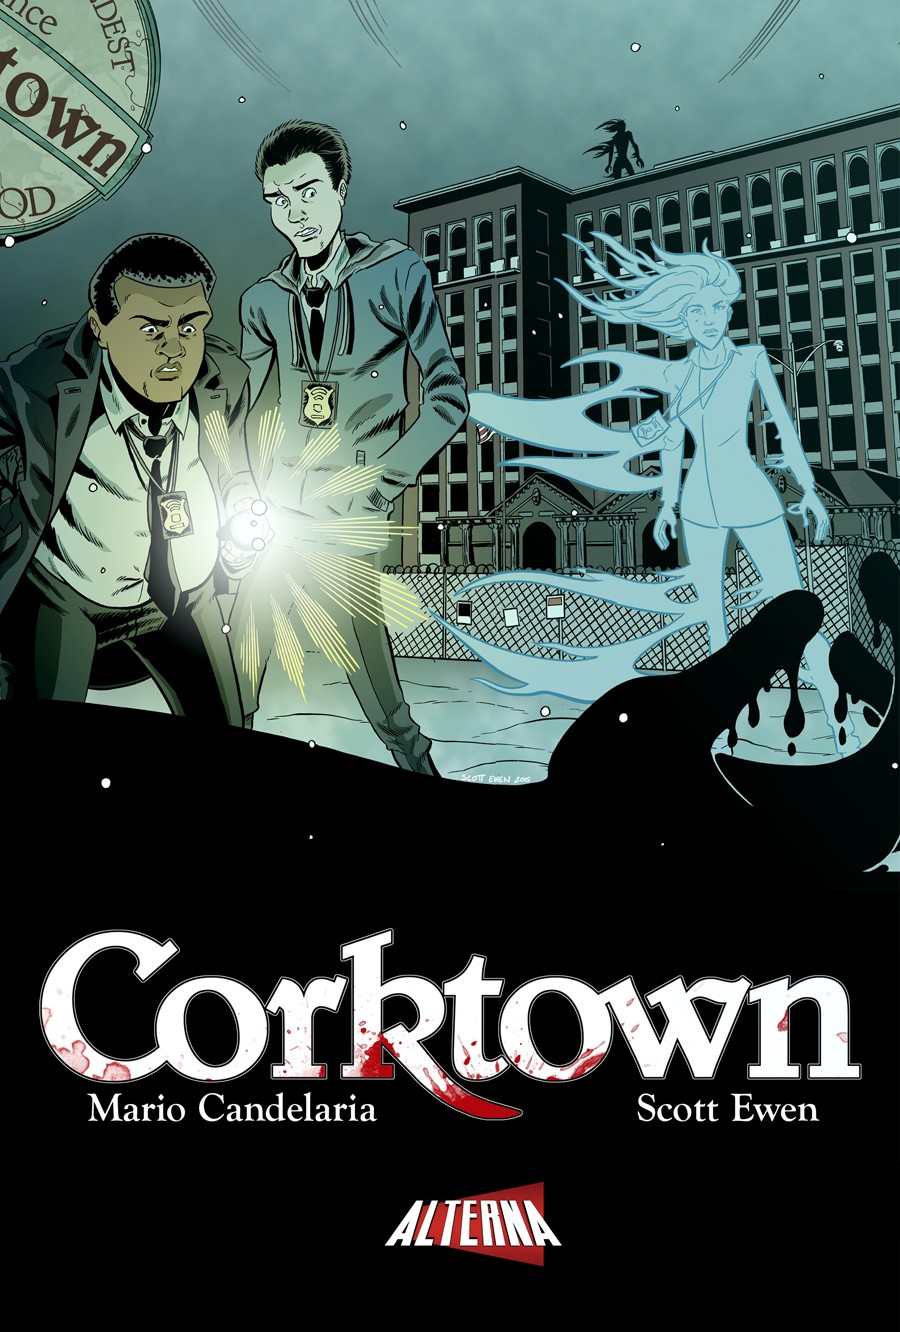 Detroit has a vampire problem in \'Corktown\' comic | The Scene